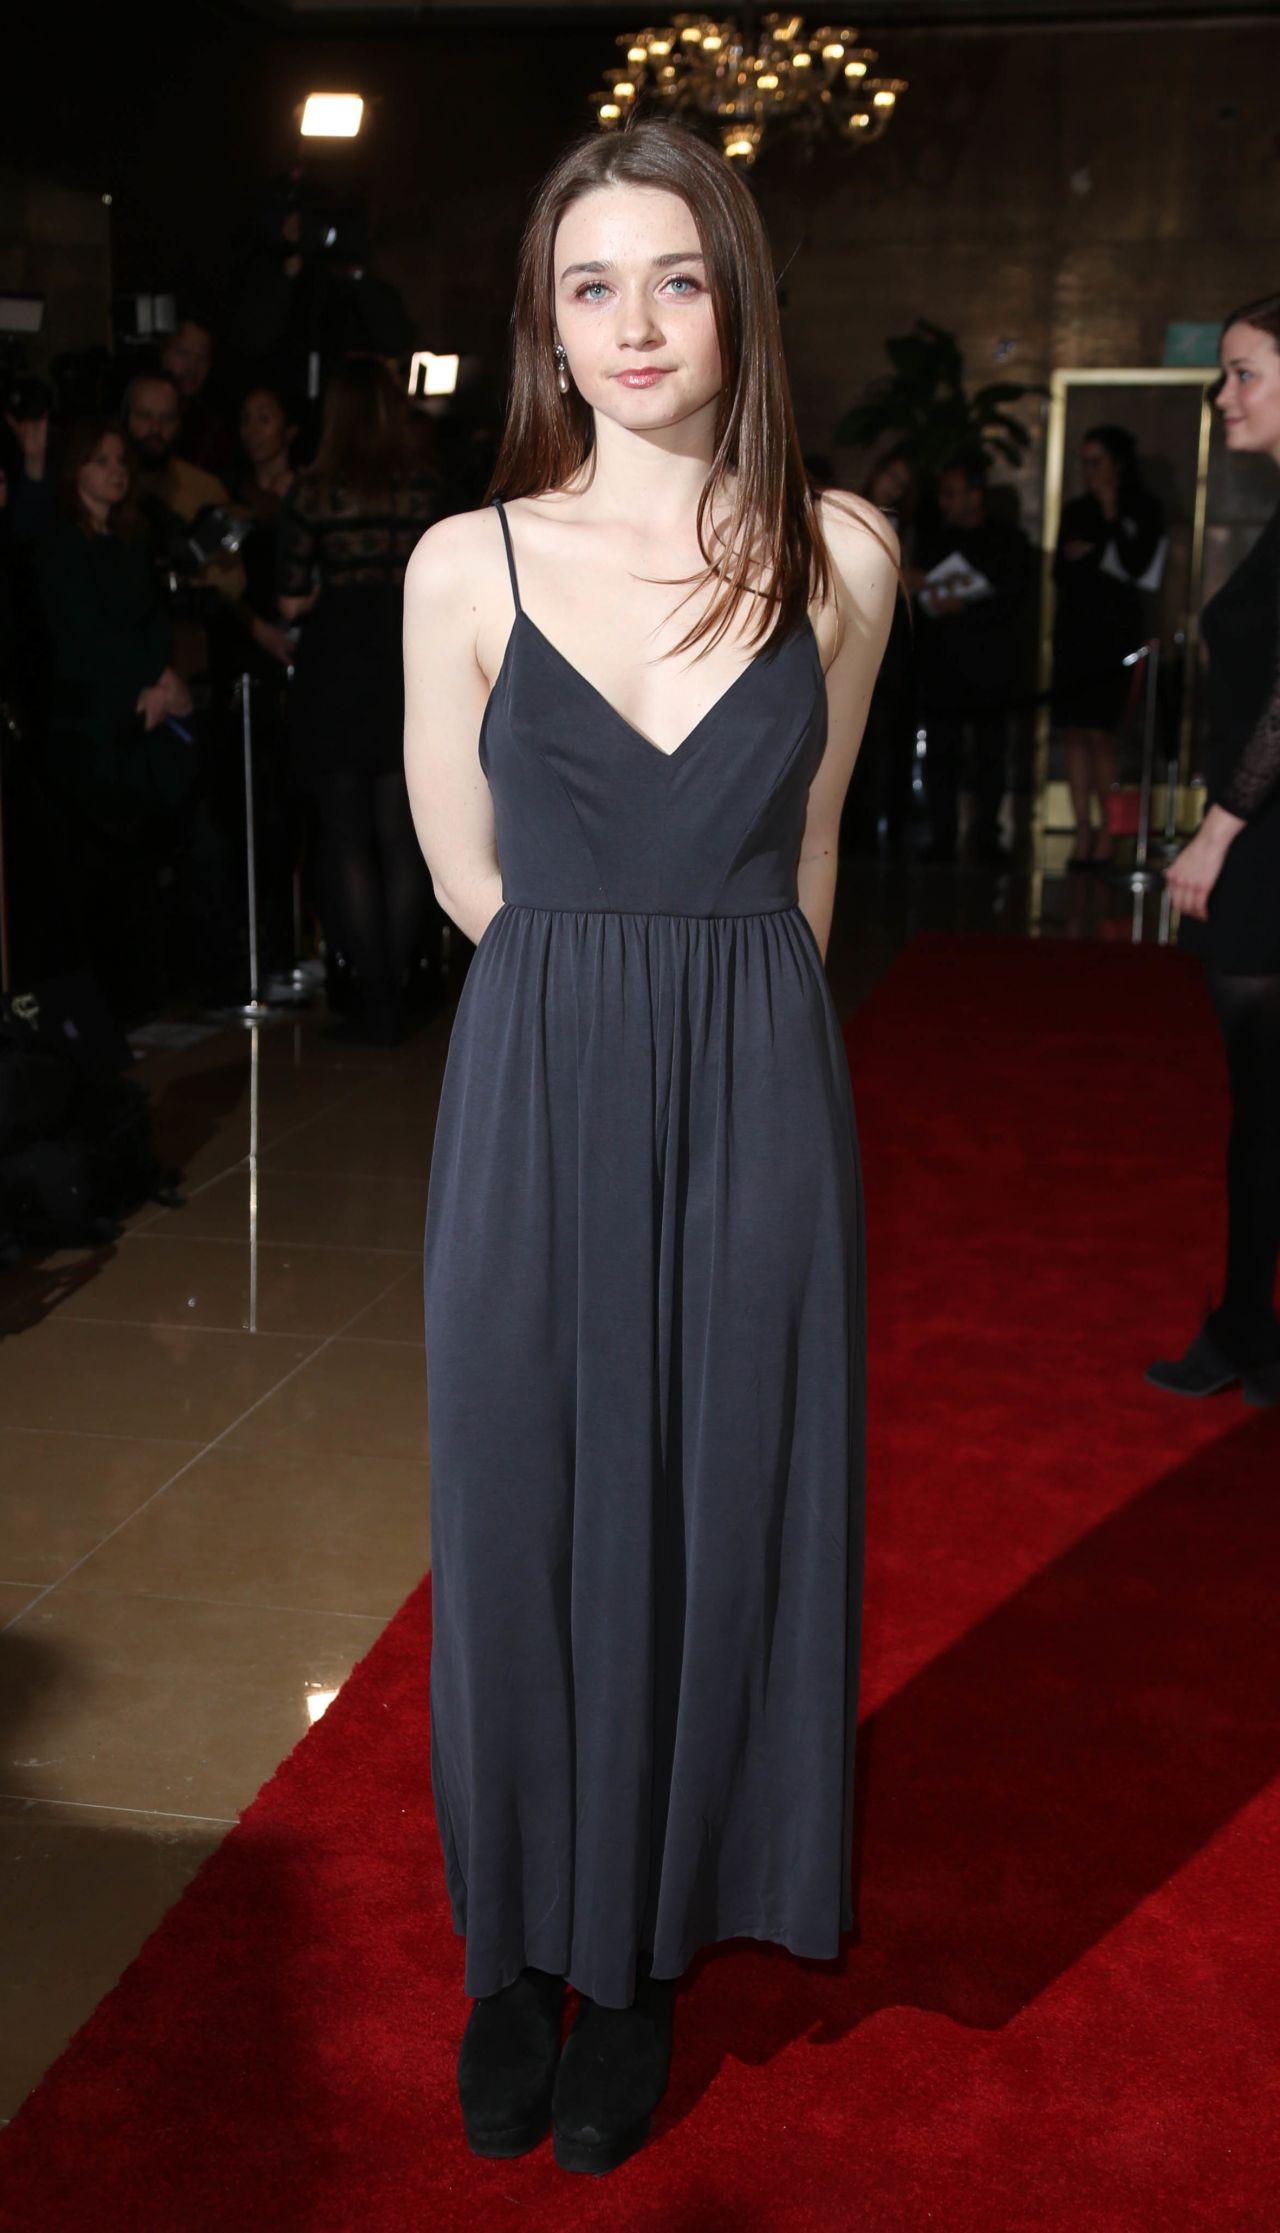 Jessica Barden naked (91 photo) Young, Instagram, braless